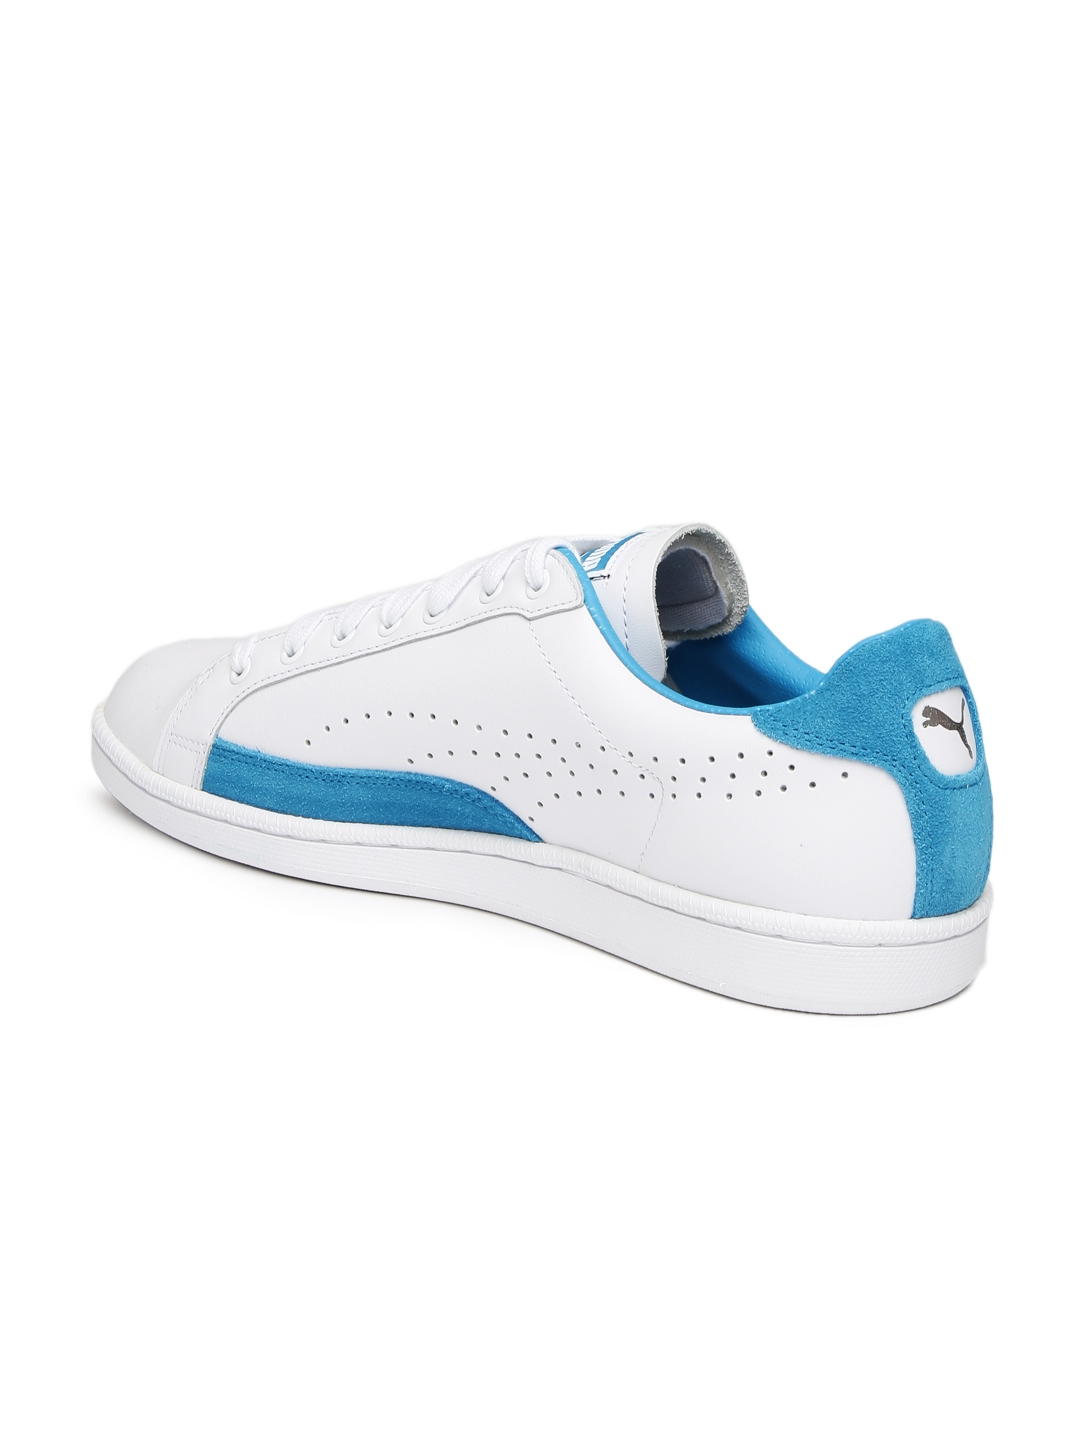 3bfe05e276f Buy Puma Men White   Blue Match 74 UPC Leather Sneakers - Casual Shoes for  Men 1794523